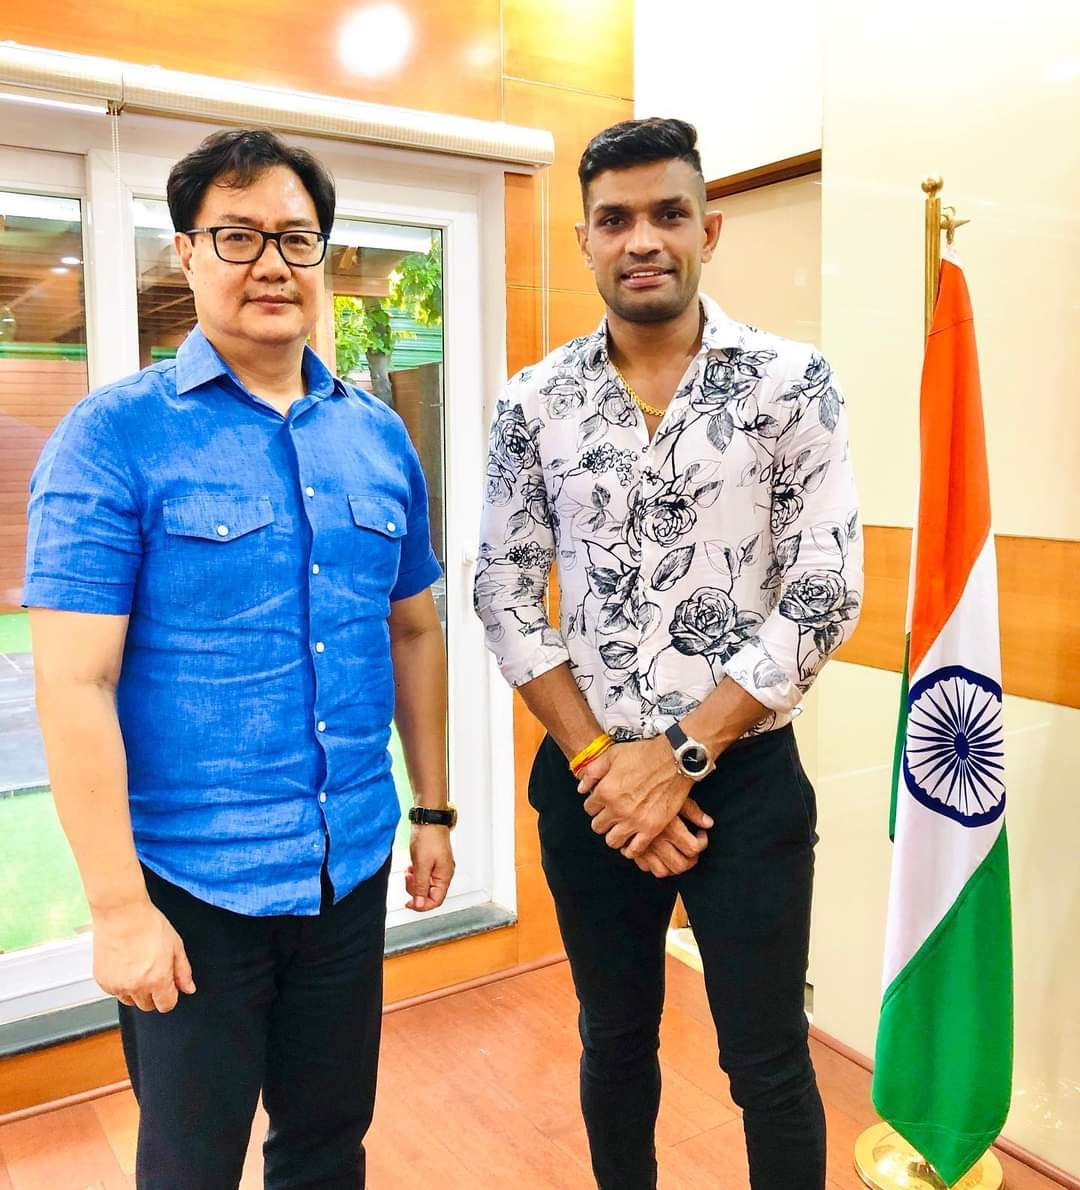 Wishing @KirenRijiju a very Happy Birthday! 🎂  Sir, you've been the torch bearer for Indian athletes and sportsmen. Your initiatives & even your twitter handle is full of inspiration for all the sports enthusiasts in the country. I wish you a great year ahead 💐🙏🎉